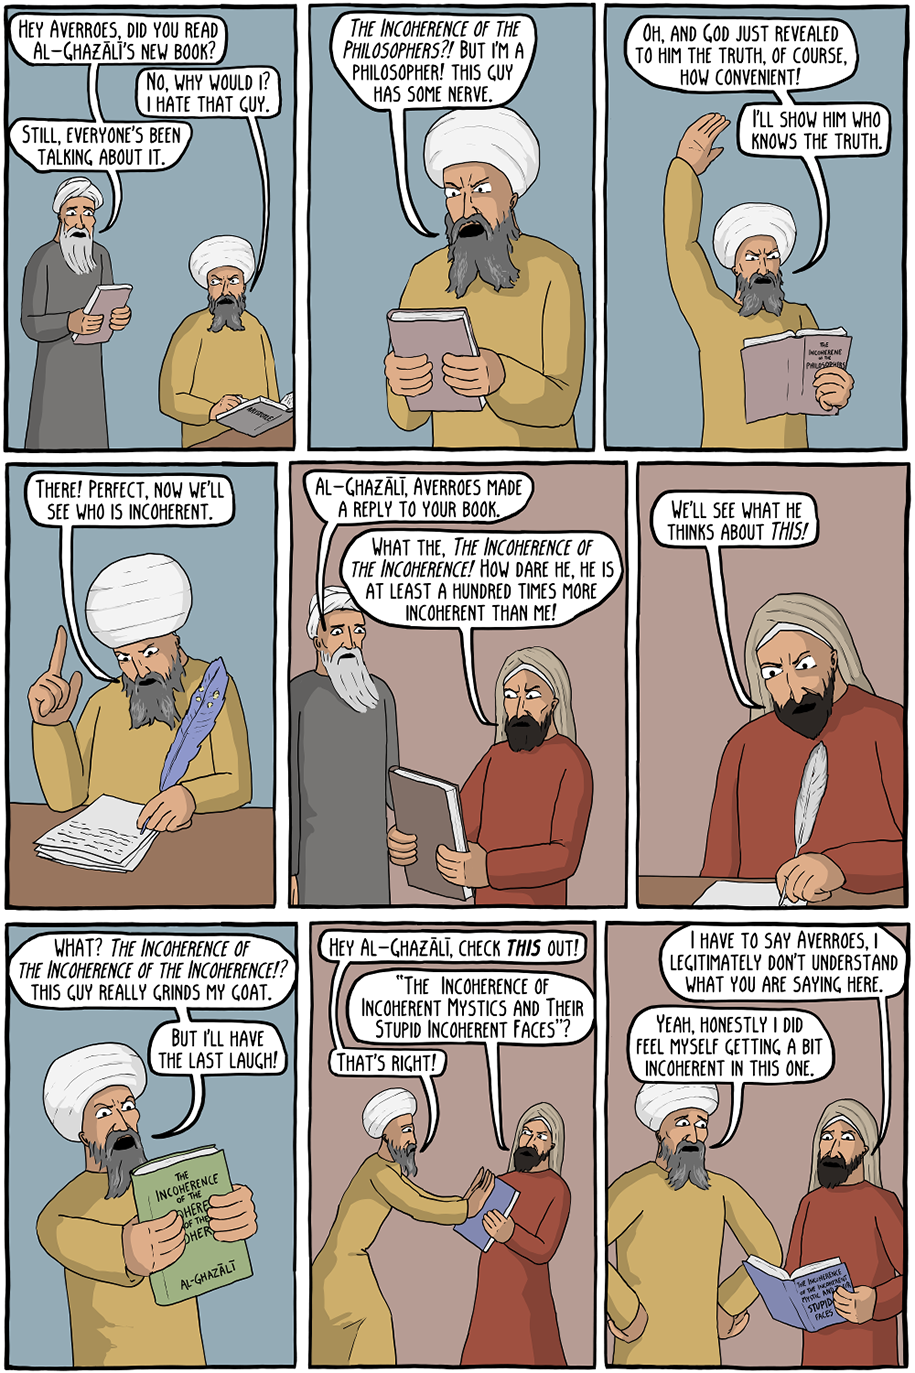 http://existentialcomics.com/philosopher/Averroes_(Ibn_Rushd)